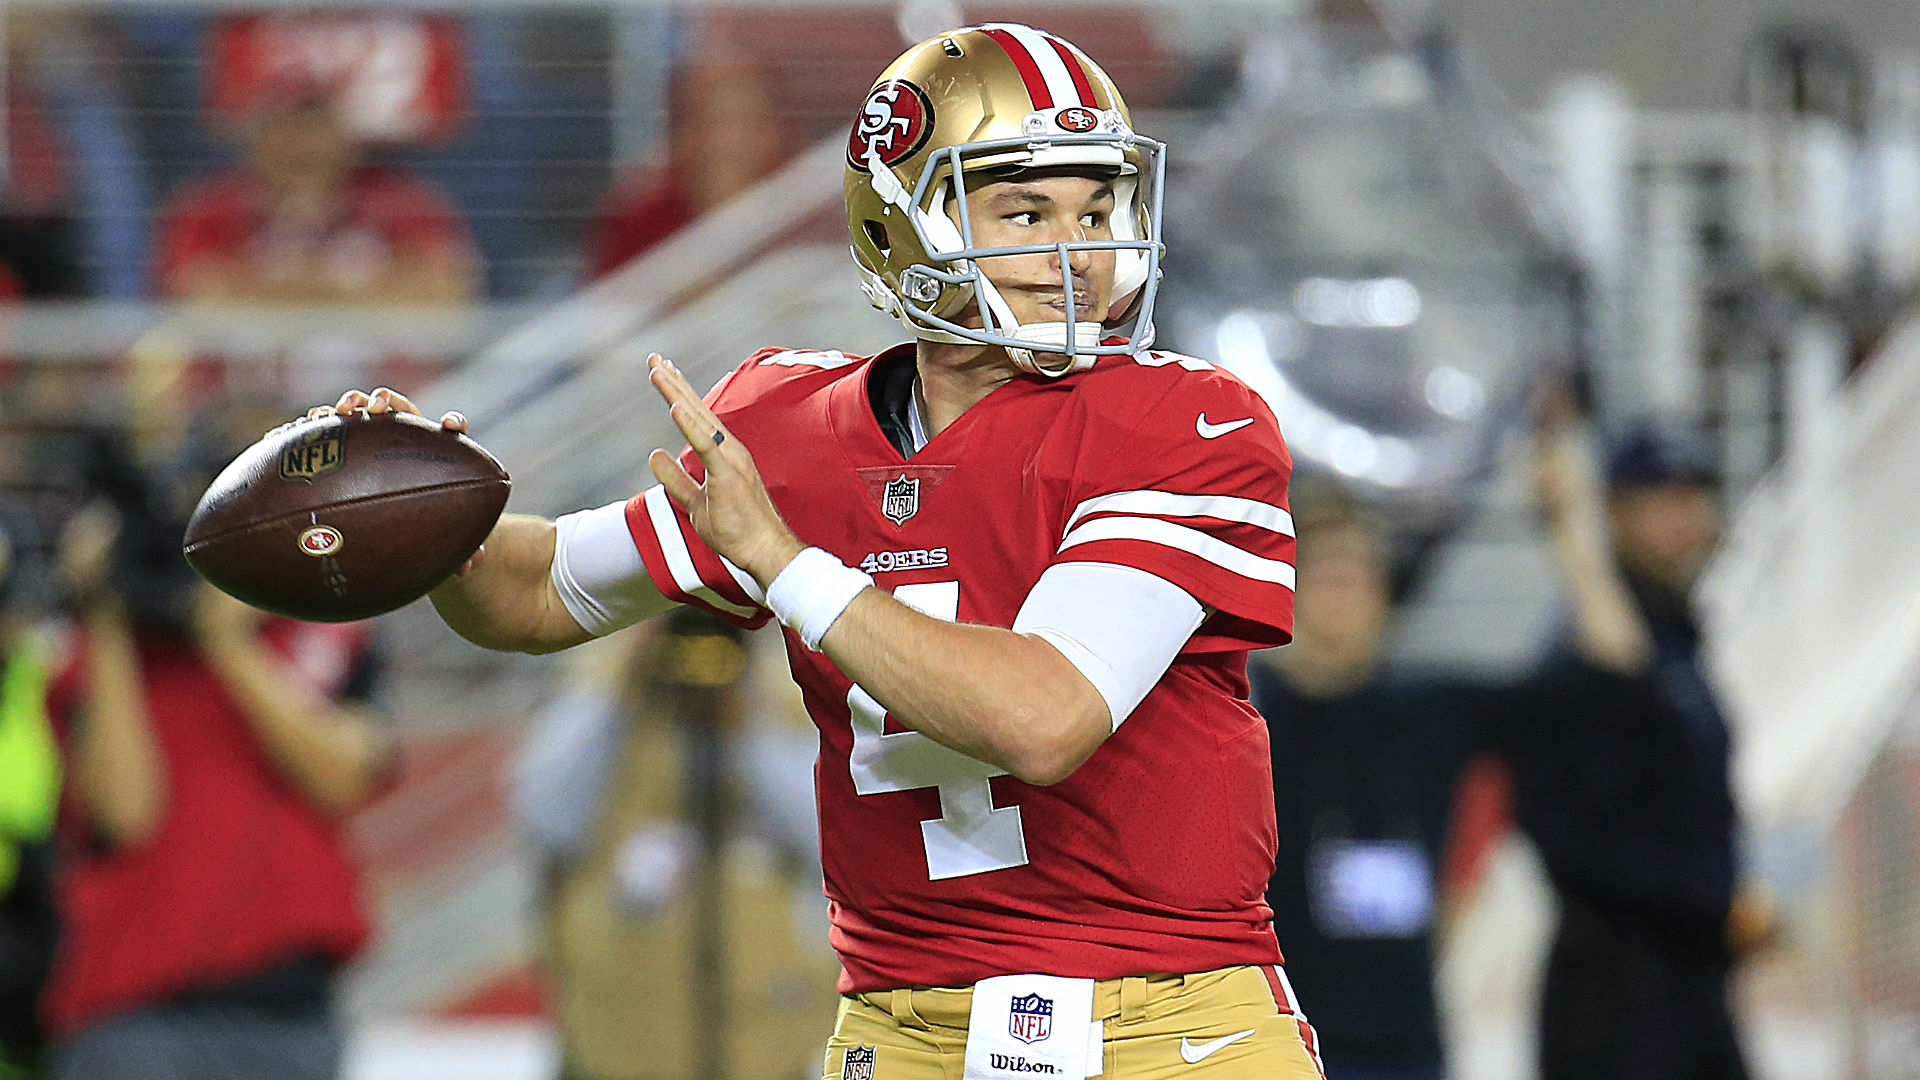 Who is Nick Mullens? Unknown quarterback shines for 49ers in NFL debut vs. Raiders